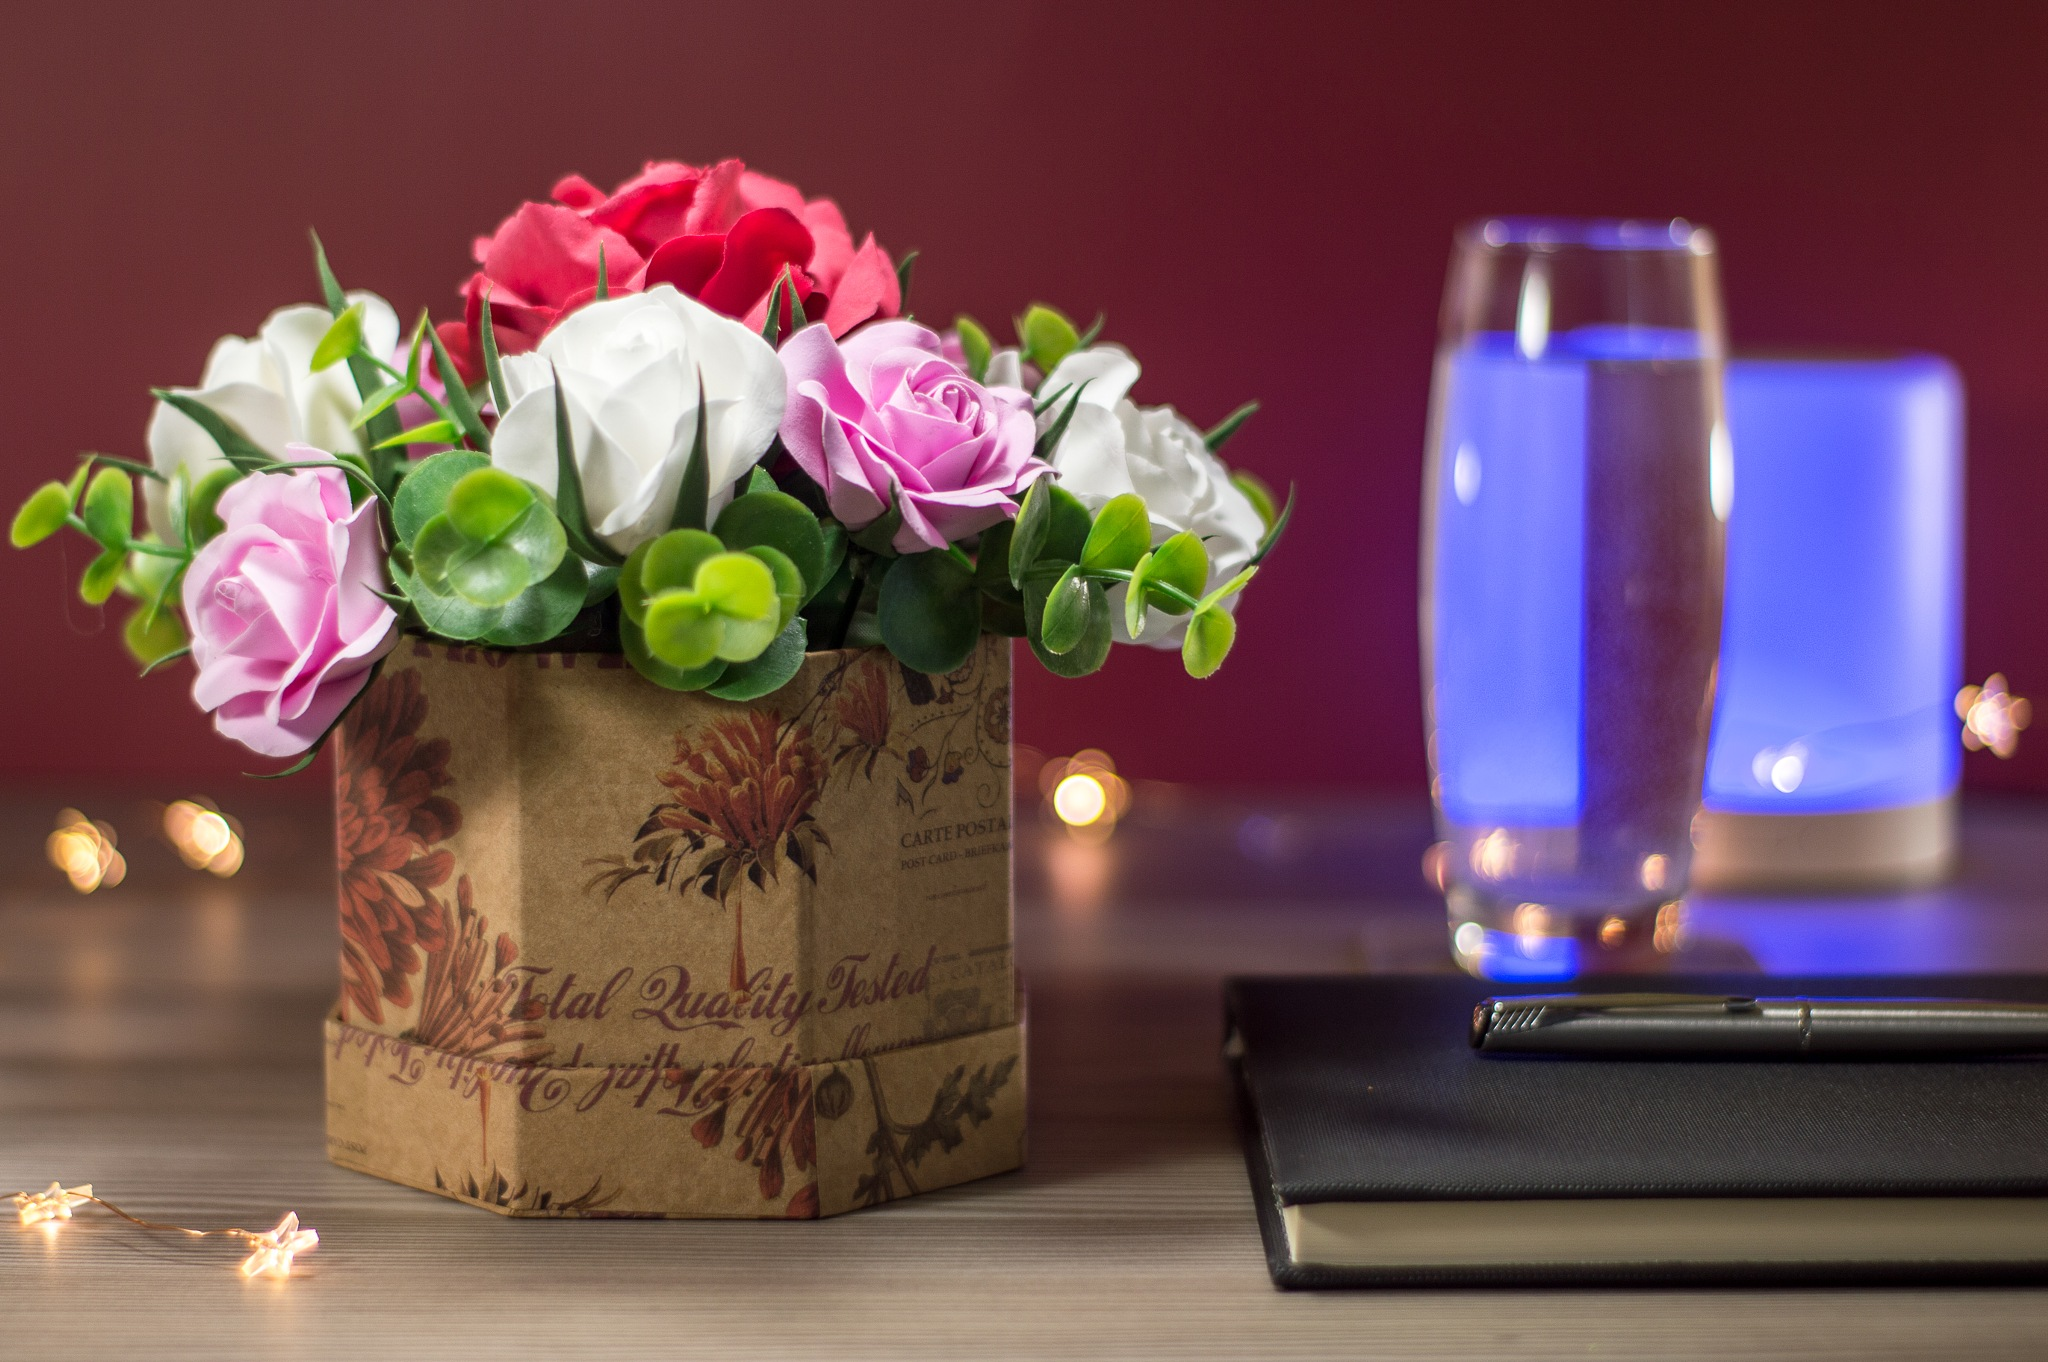 Handcrafted Rosebox by Andrei Dragusan